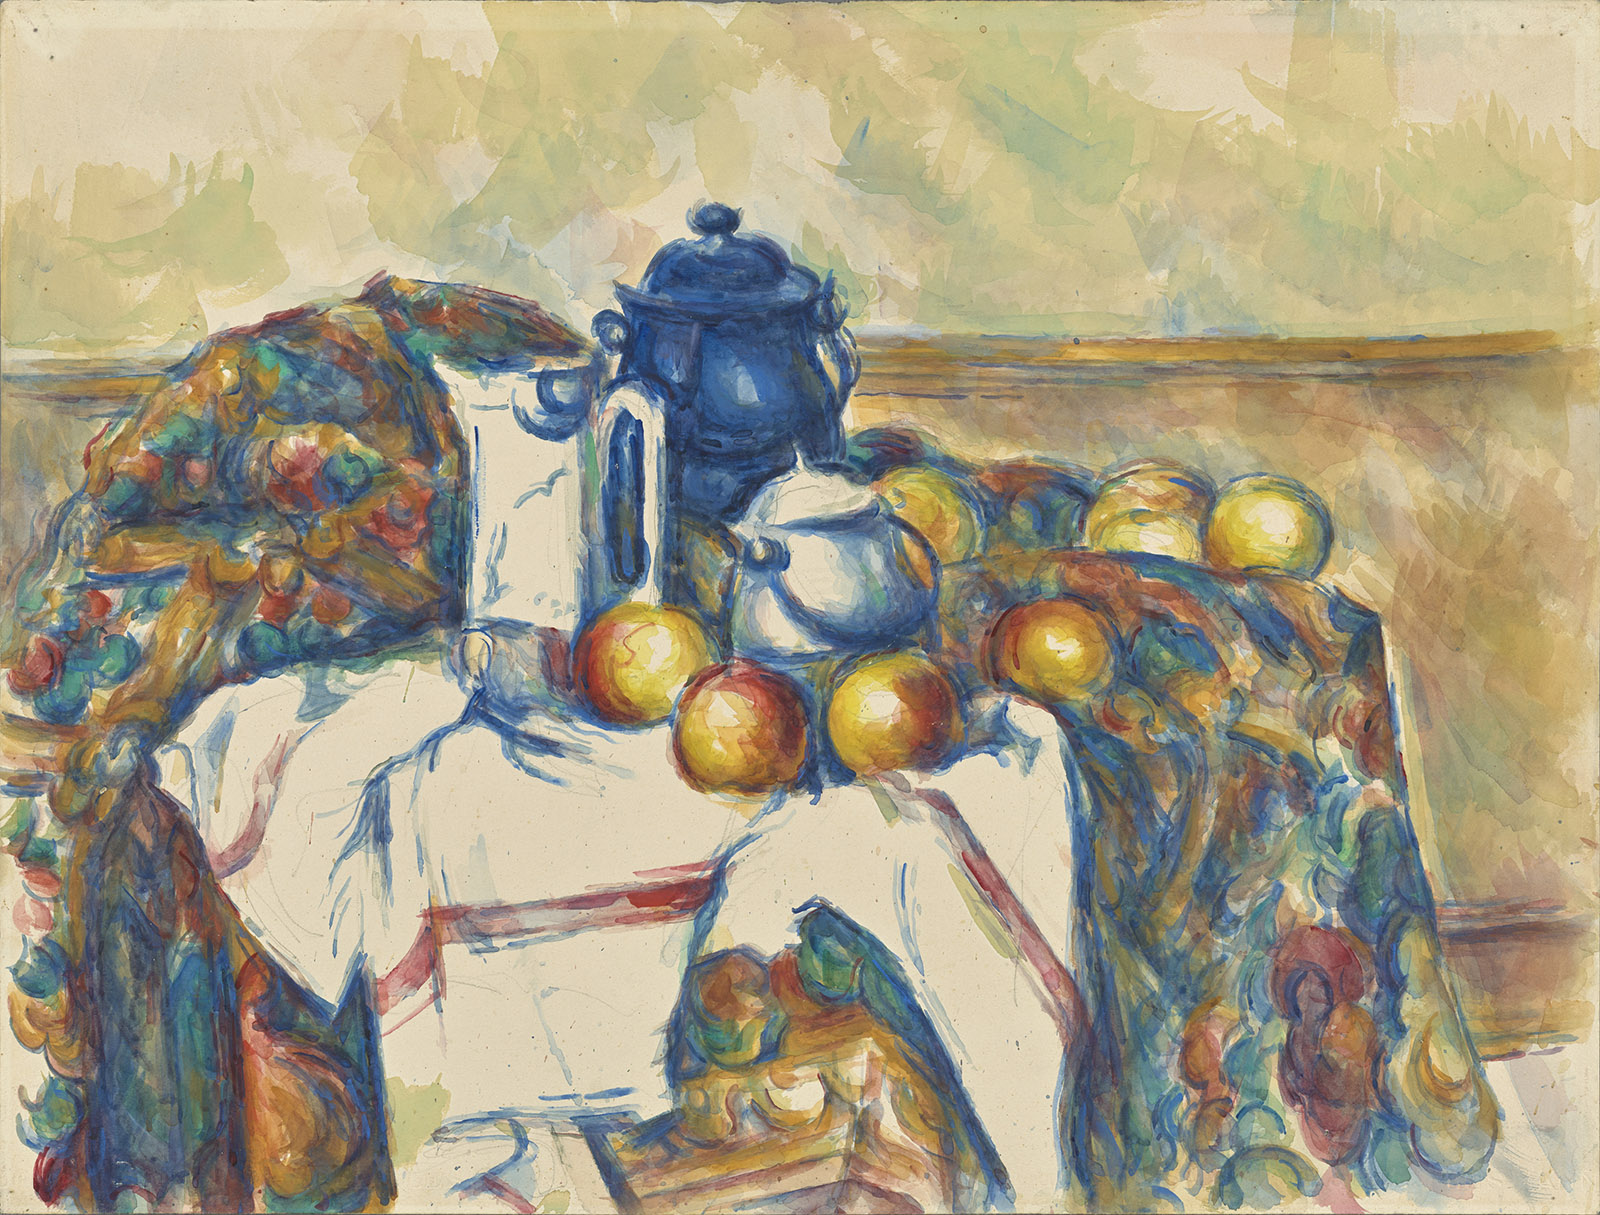 Still Life with Blue Pot; painting by Paul Cézanne